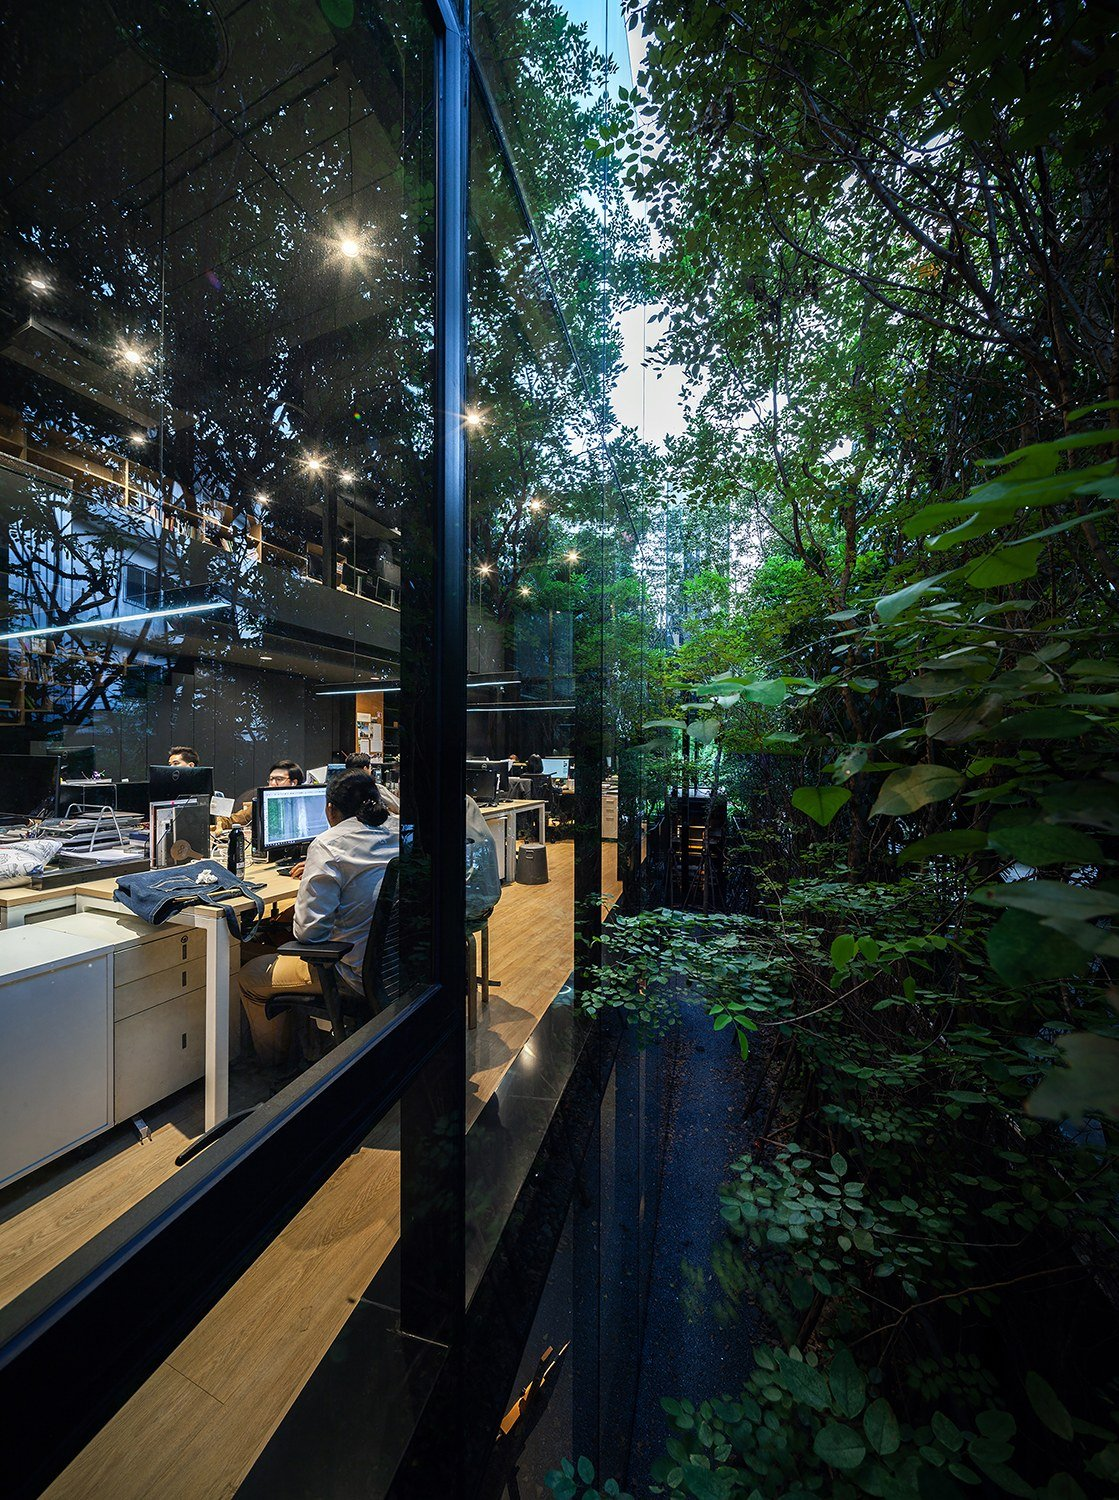 Working space on thee upstairs is kept private and surrounded by evergreen trees. Spaceshift